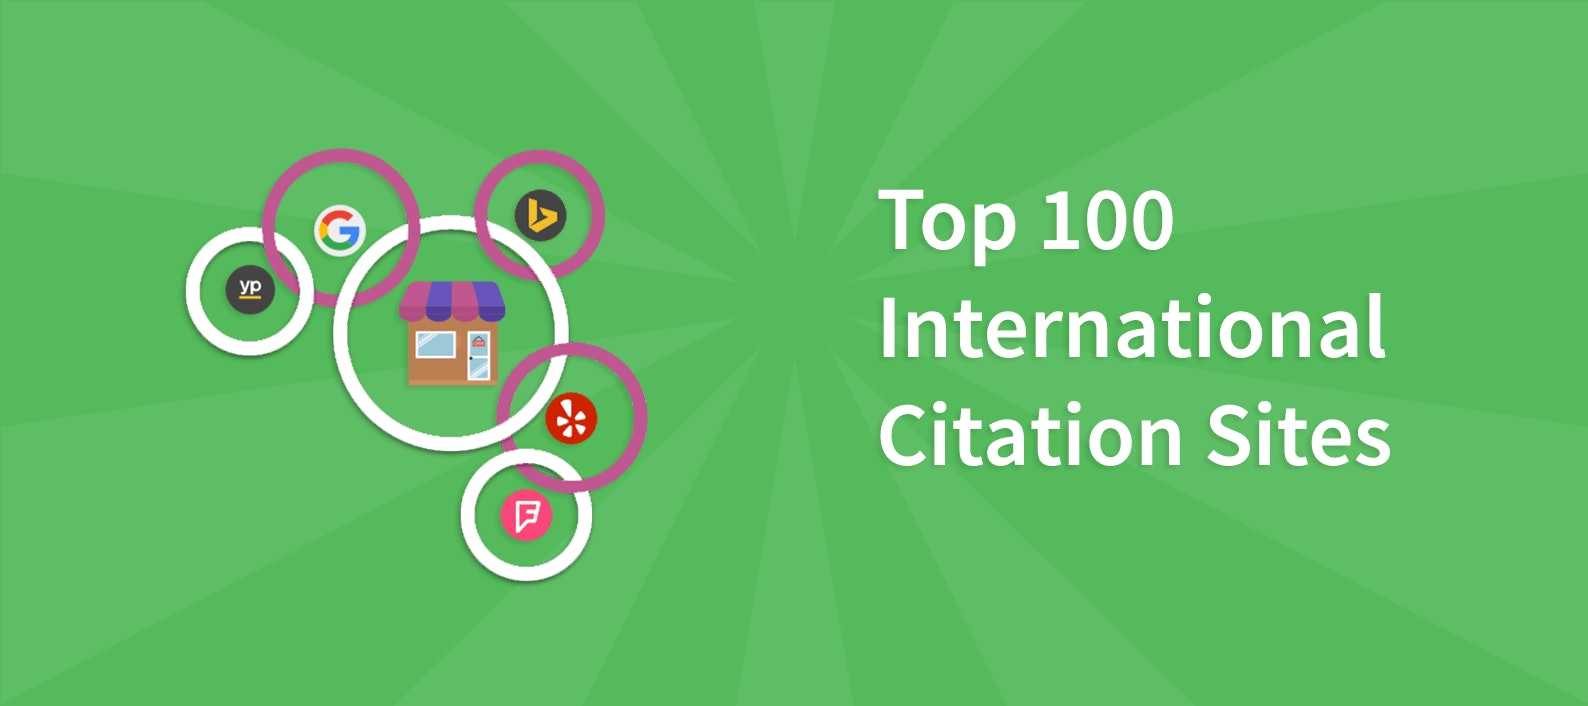 Top 100 International Citation Sites From BrightLocal